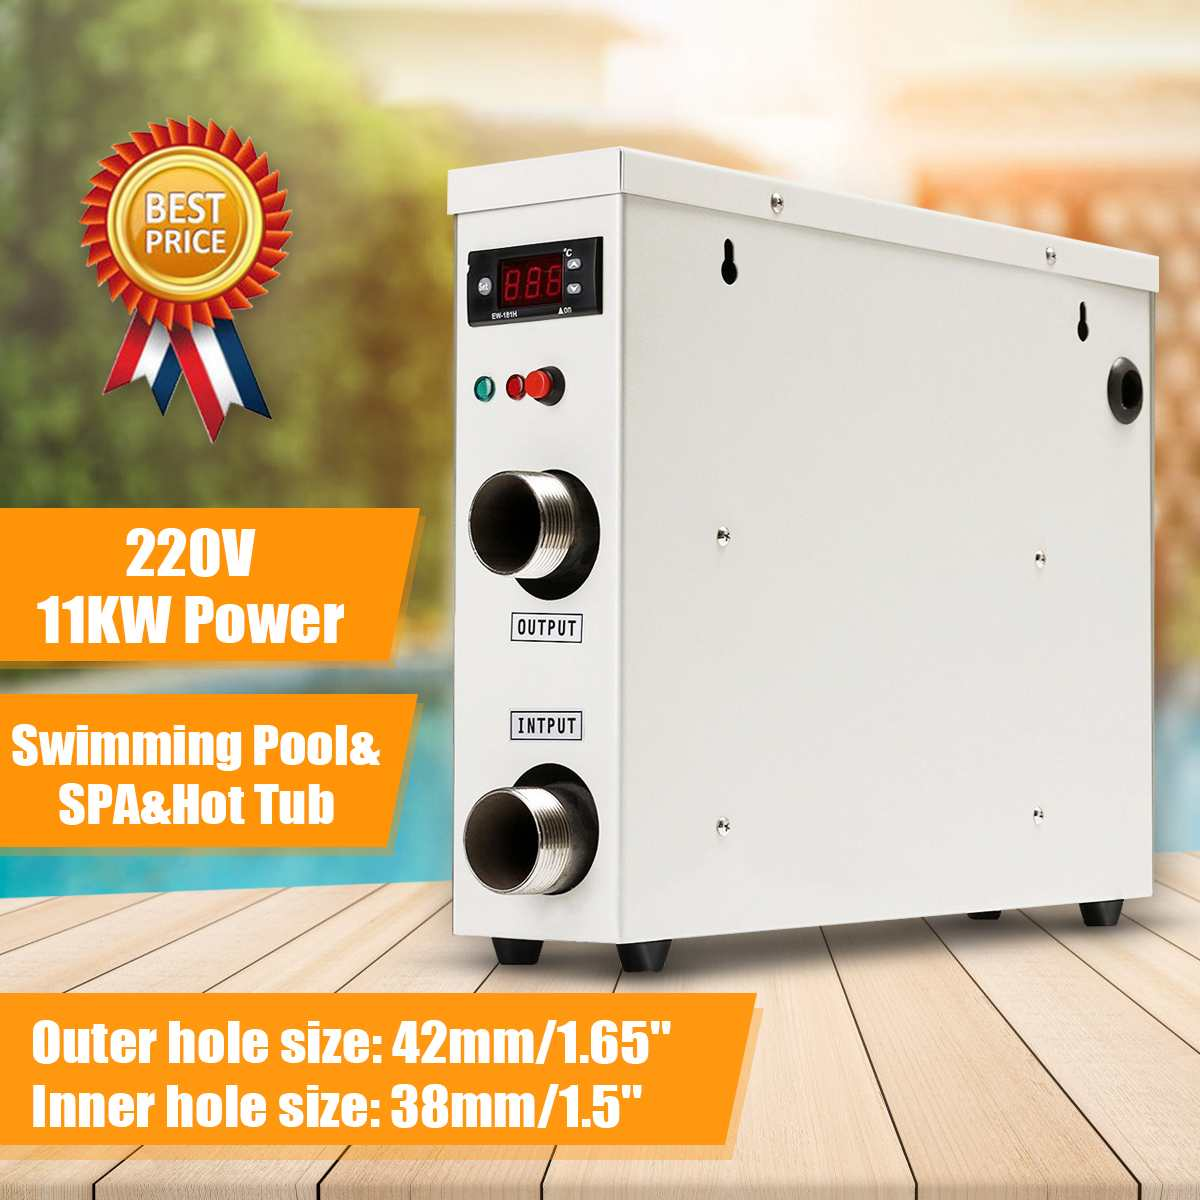 11KW 220V Water Heater  Electric Digital Water Heater Thermostat For Swimming Pool SPA Hot Tub Bath Water Heating Water Hot